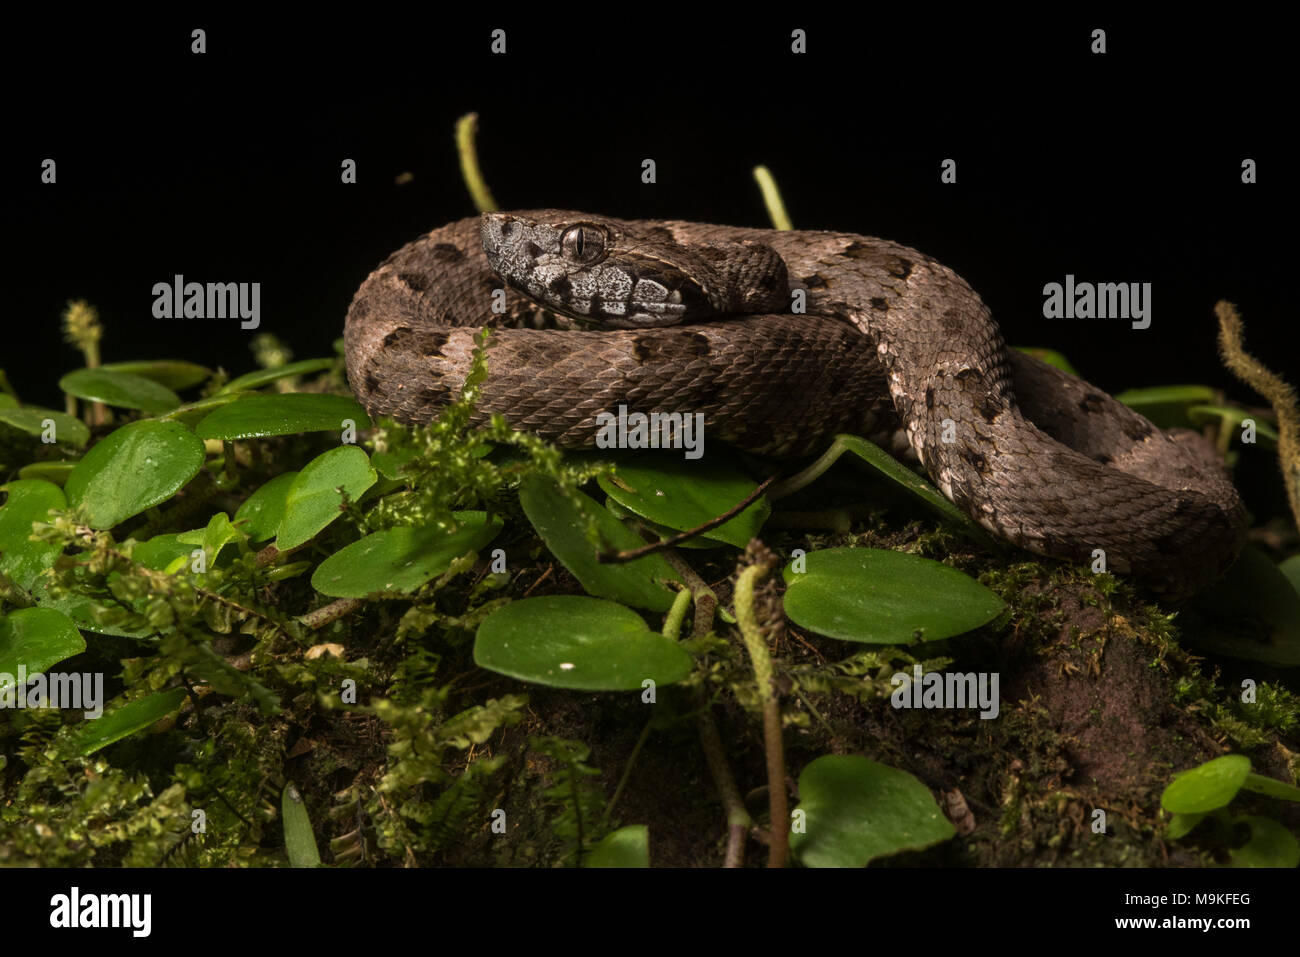 The fer de lance (Bothrops atrox) is South Americas most dangerous snake.  It is common and packs potent venom, two traits which make it a concern. - Stock Image